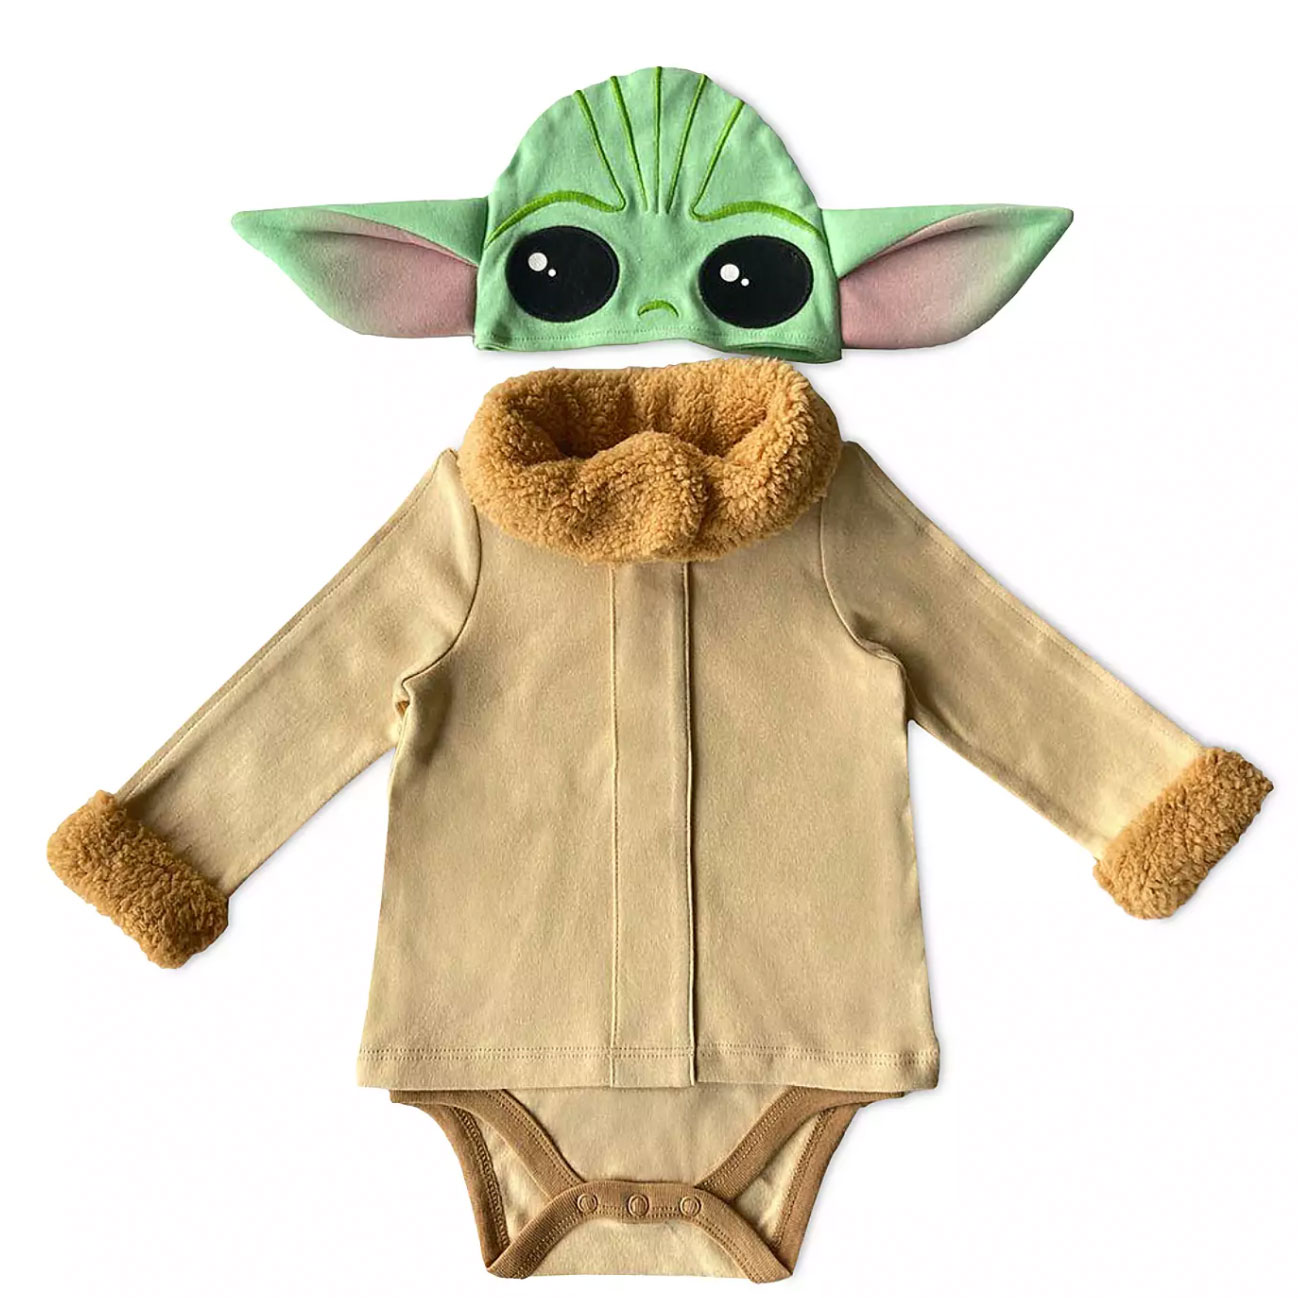 The Child Costume Bodysuit for Baby